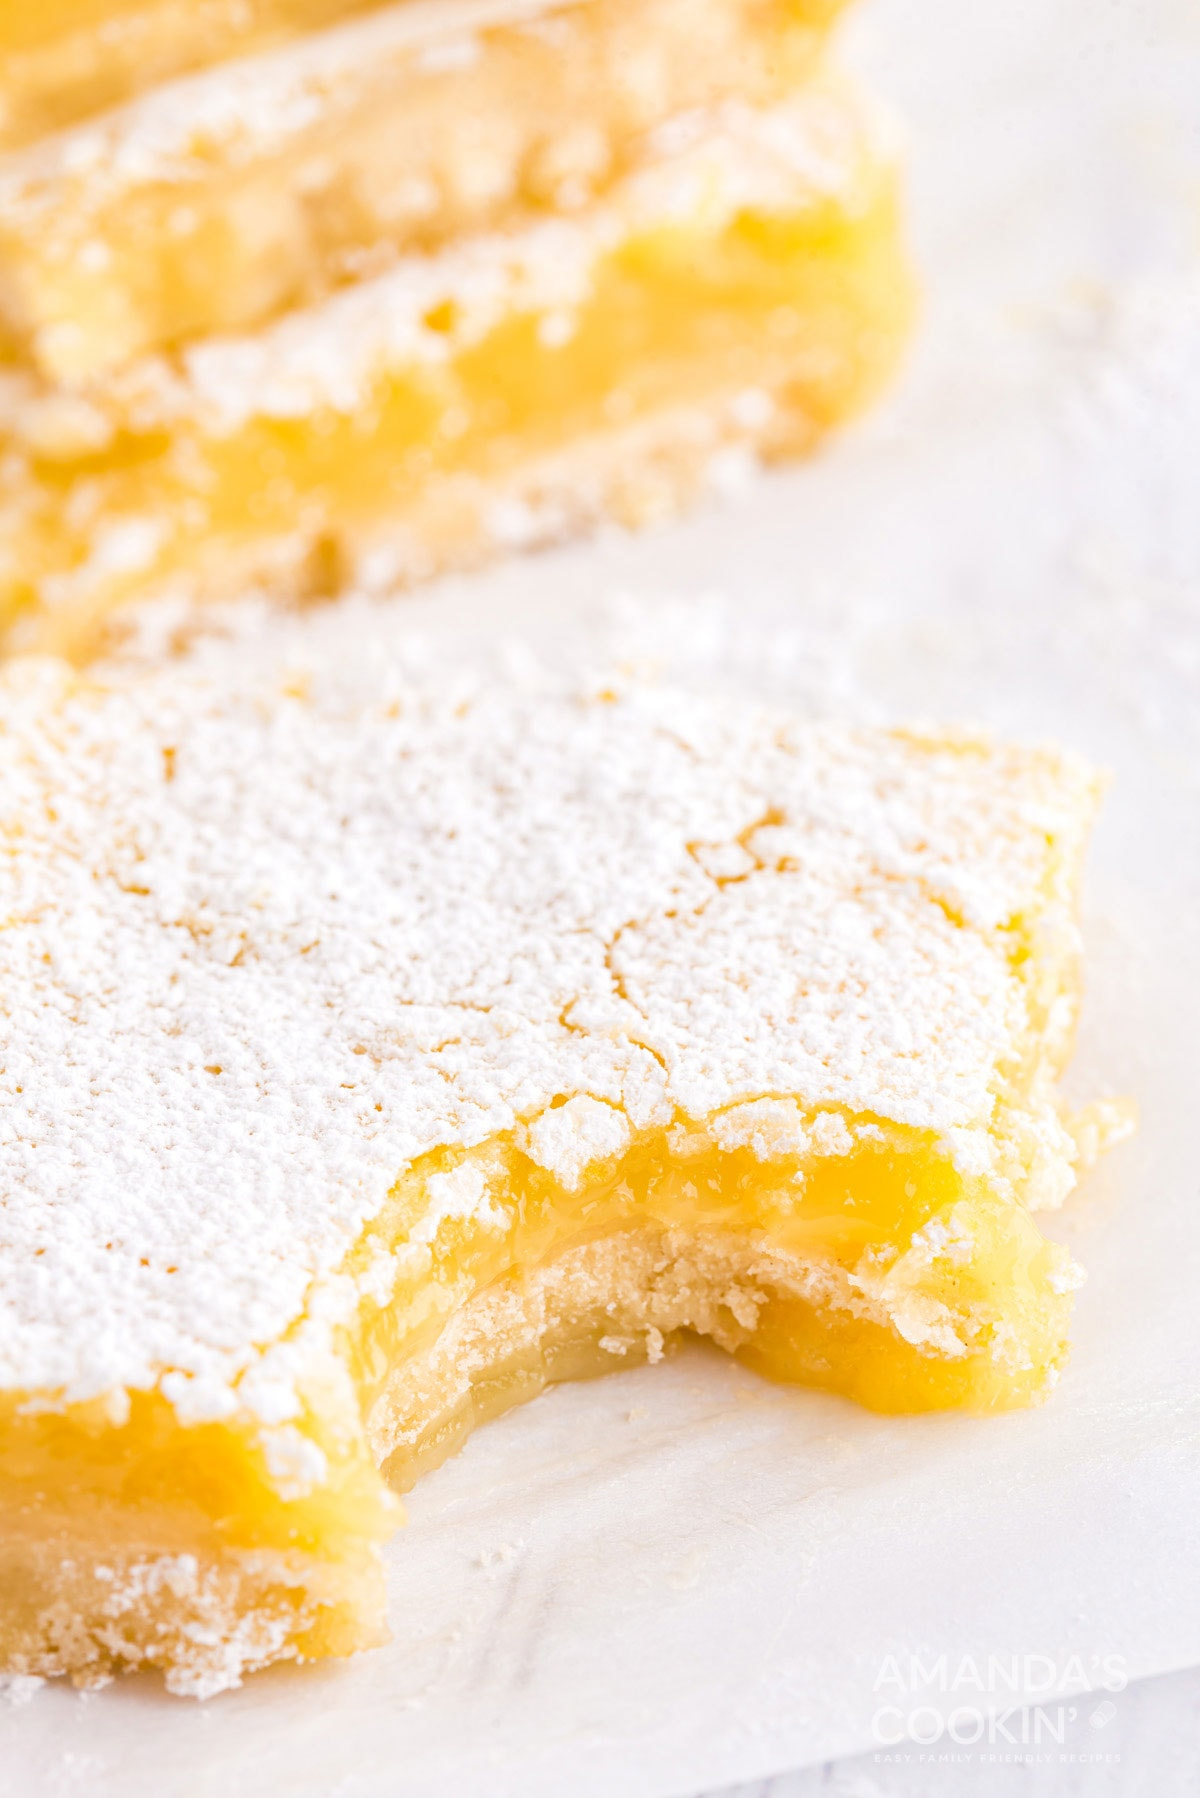 lemon bar with a bite out of it